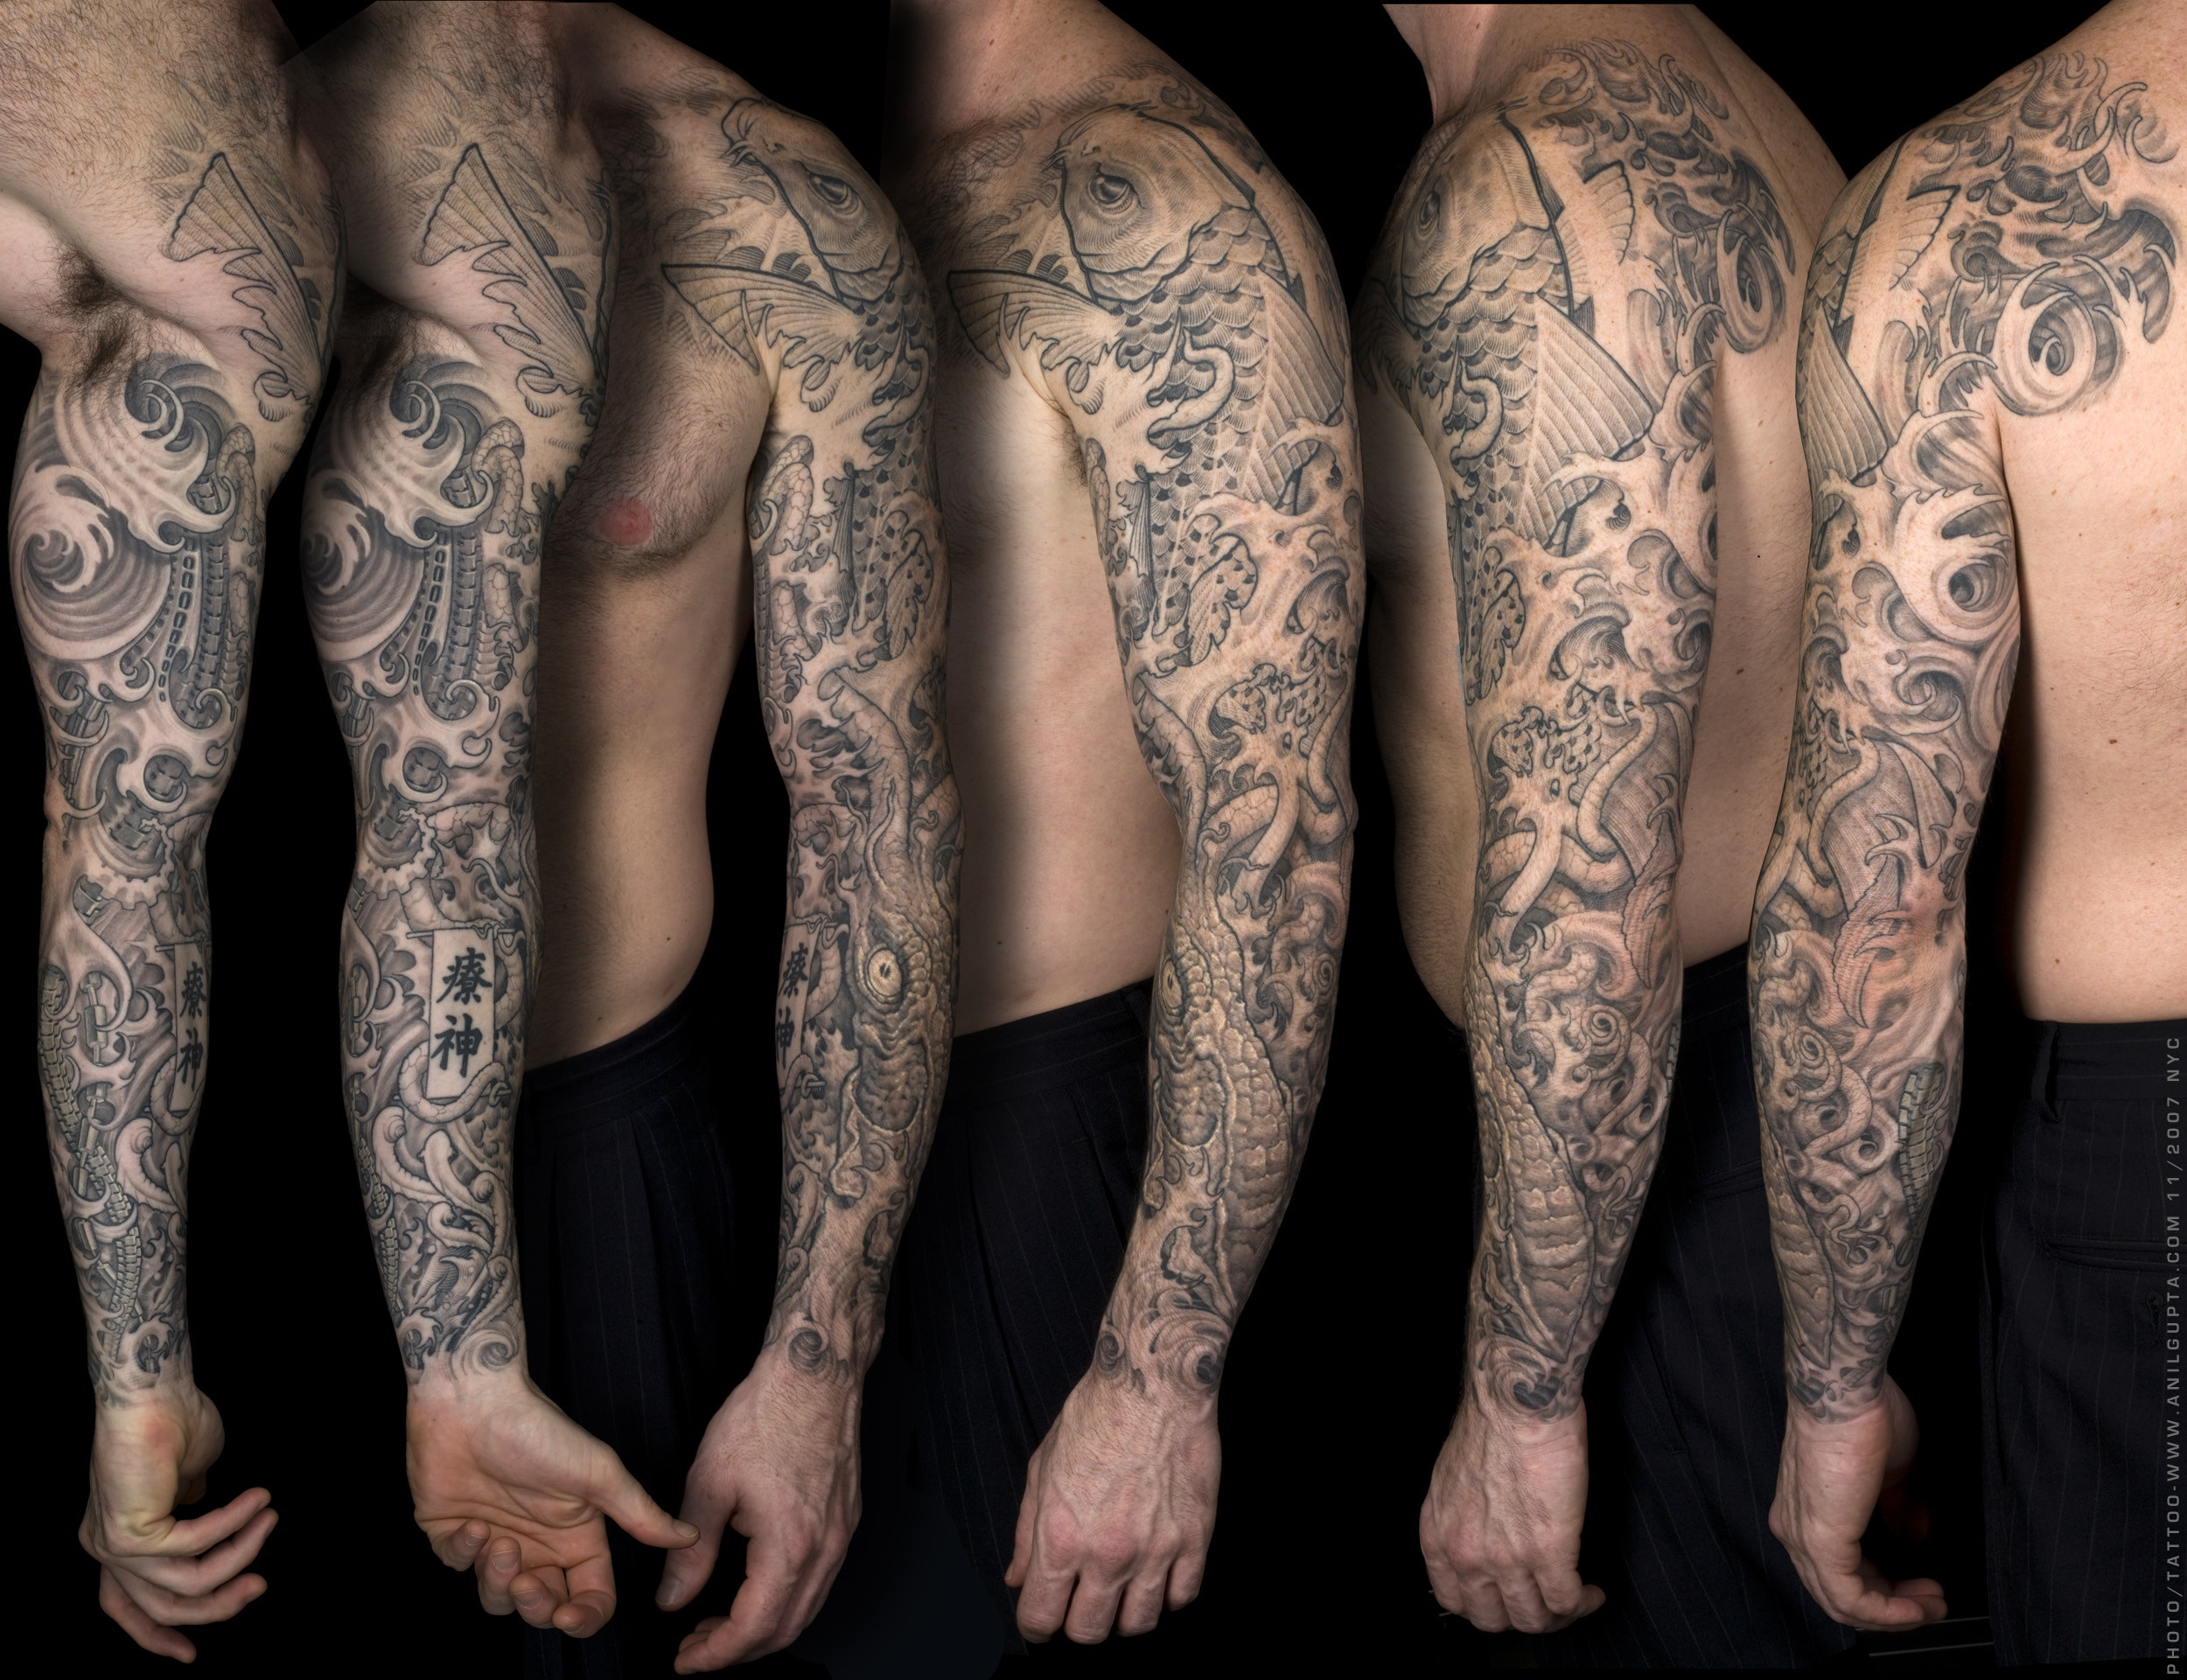 Res: 2500x1921, Artistic - Tattoo Trippy Psychedelic Artistic Wallpaper